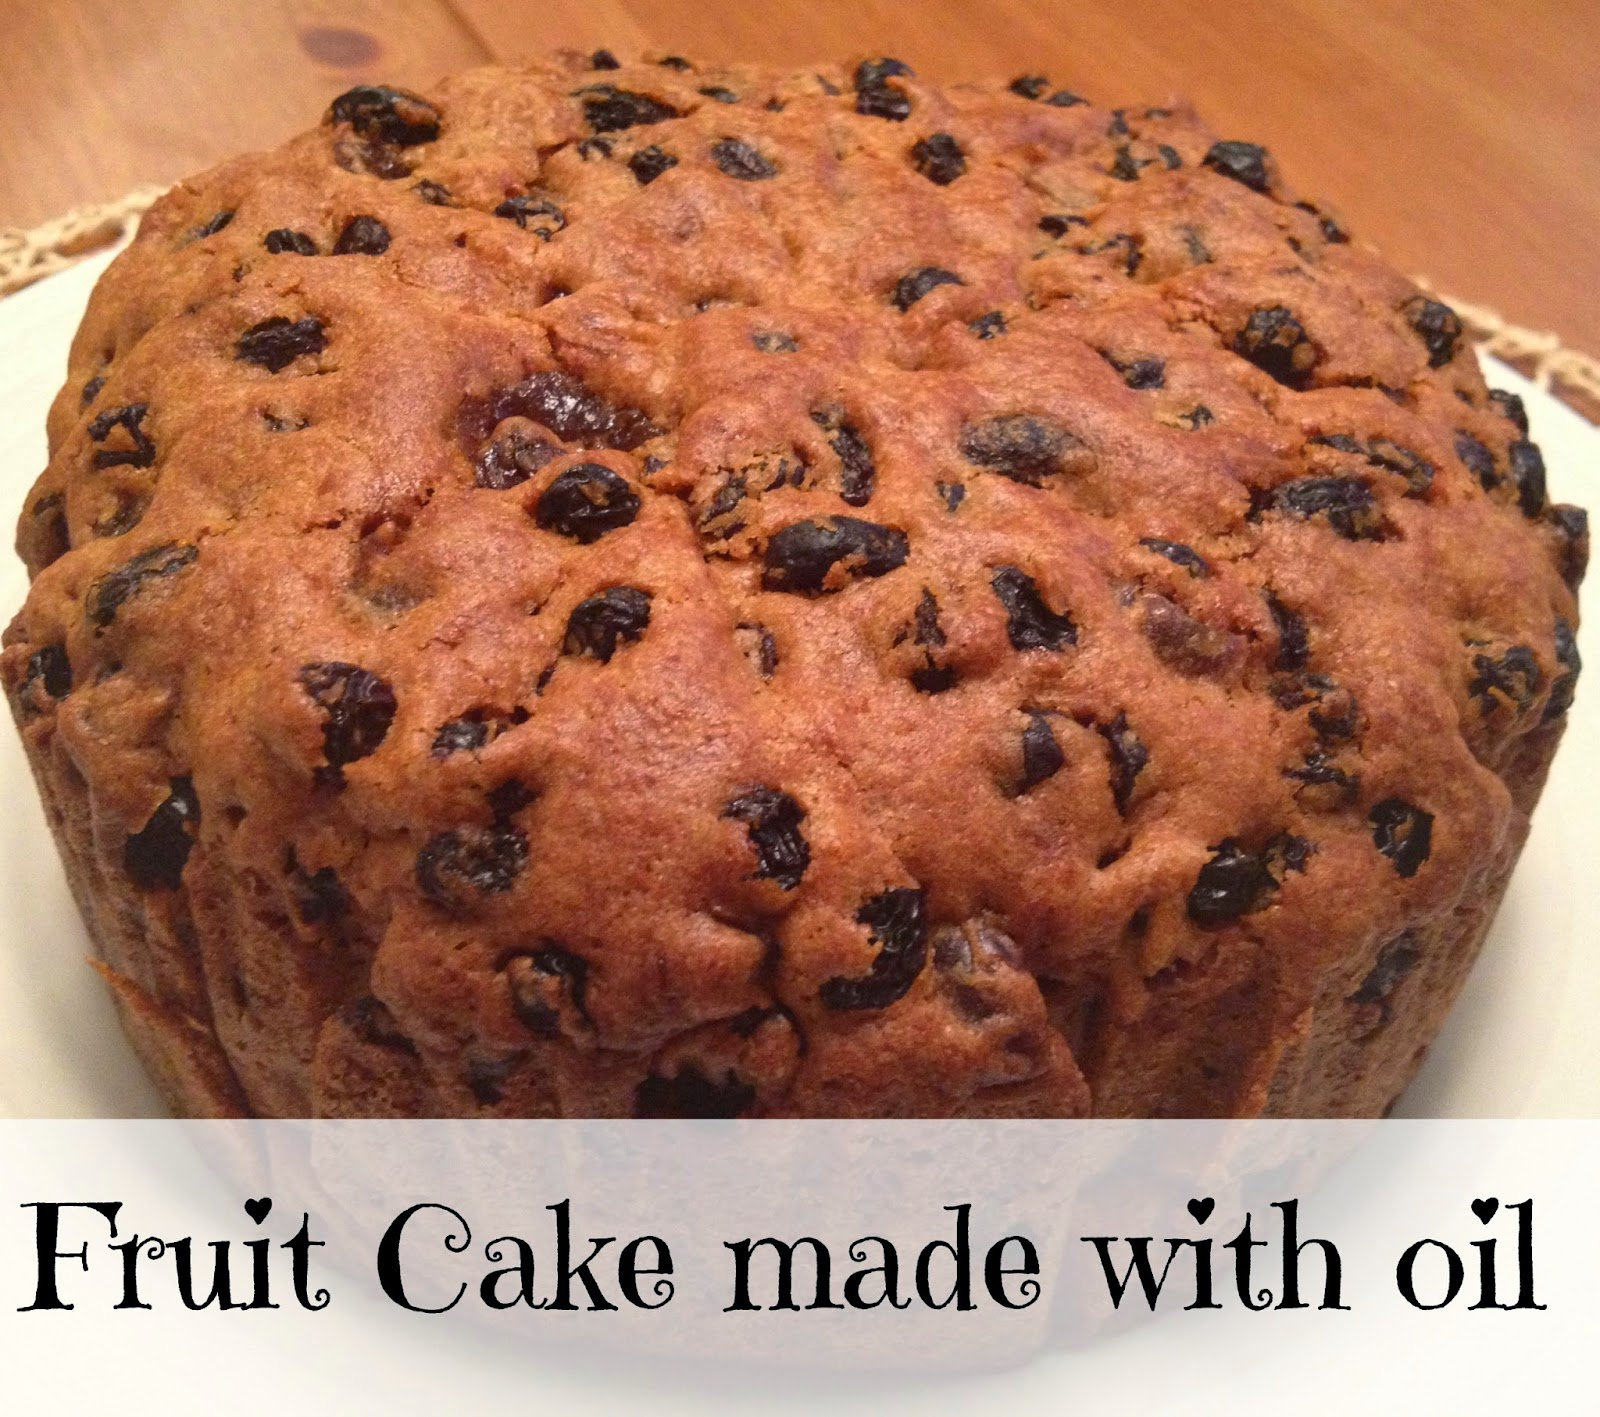 Cake Recipe Using Olive Oil